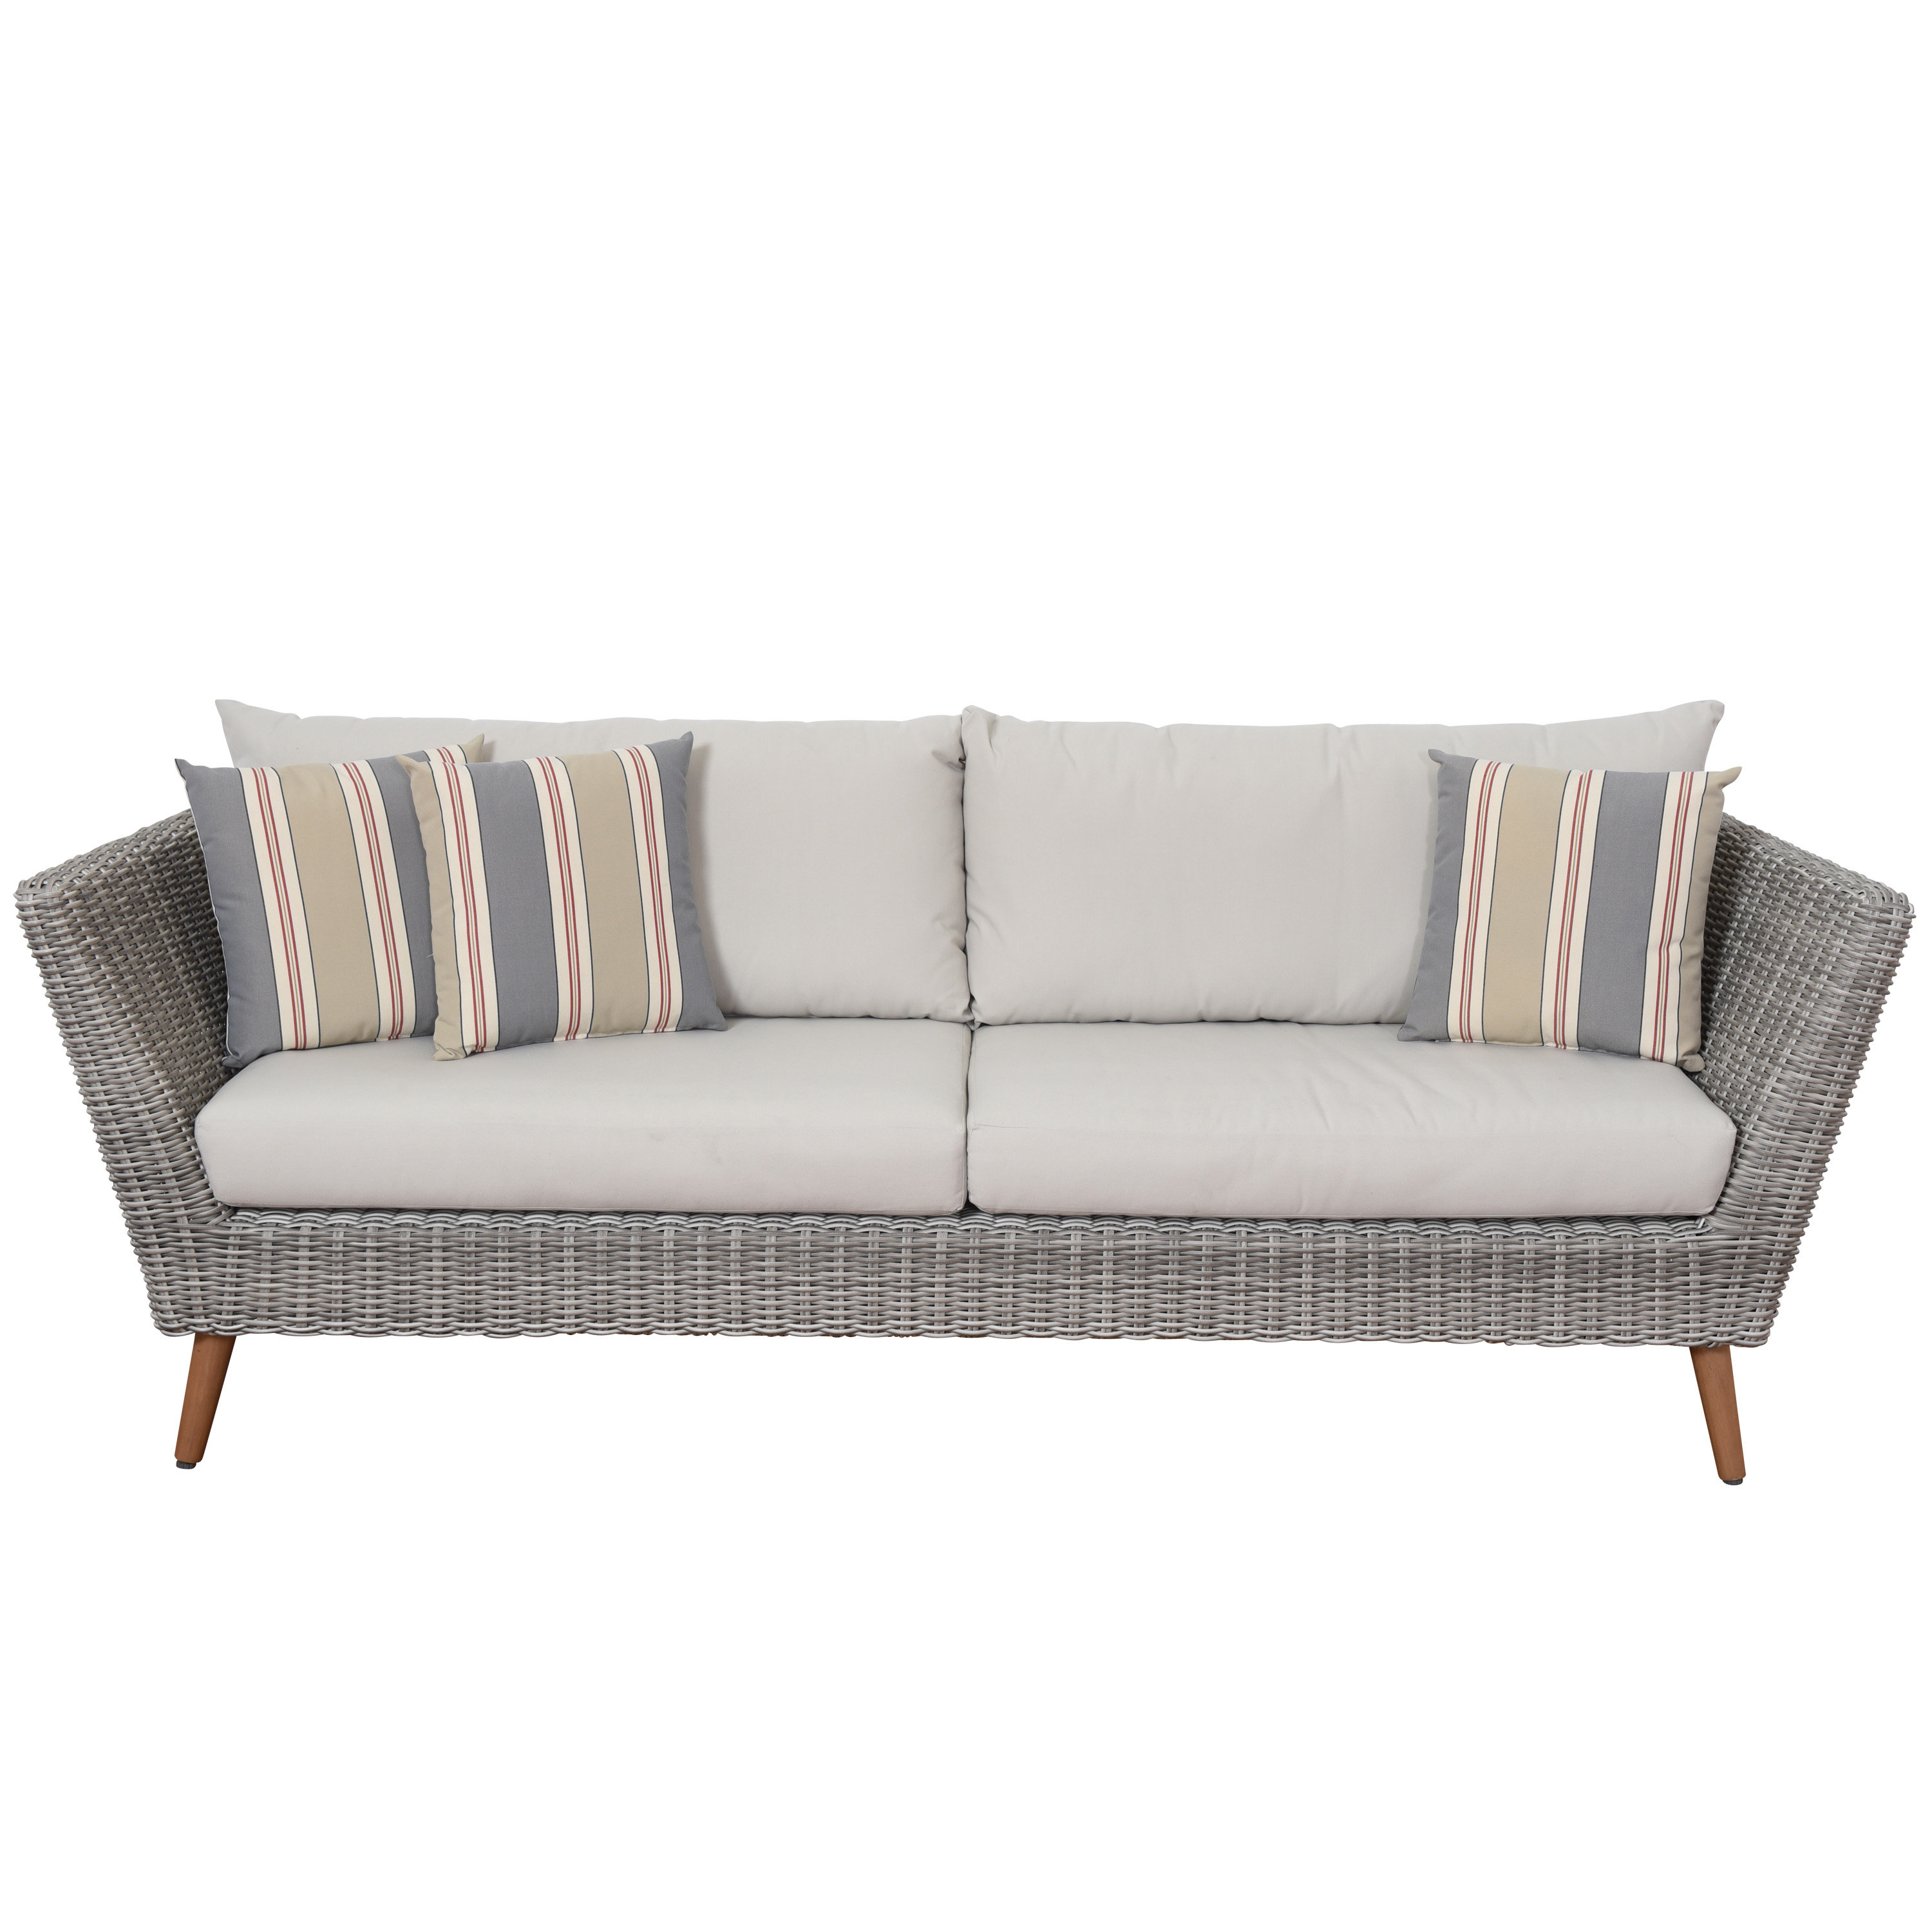 Famous Belton Patio Sofas With Cushions Pertaining To Newbury Patio Sofa With Cushions (View 9 of 25)